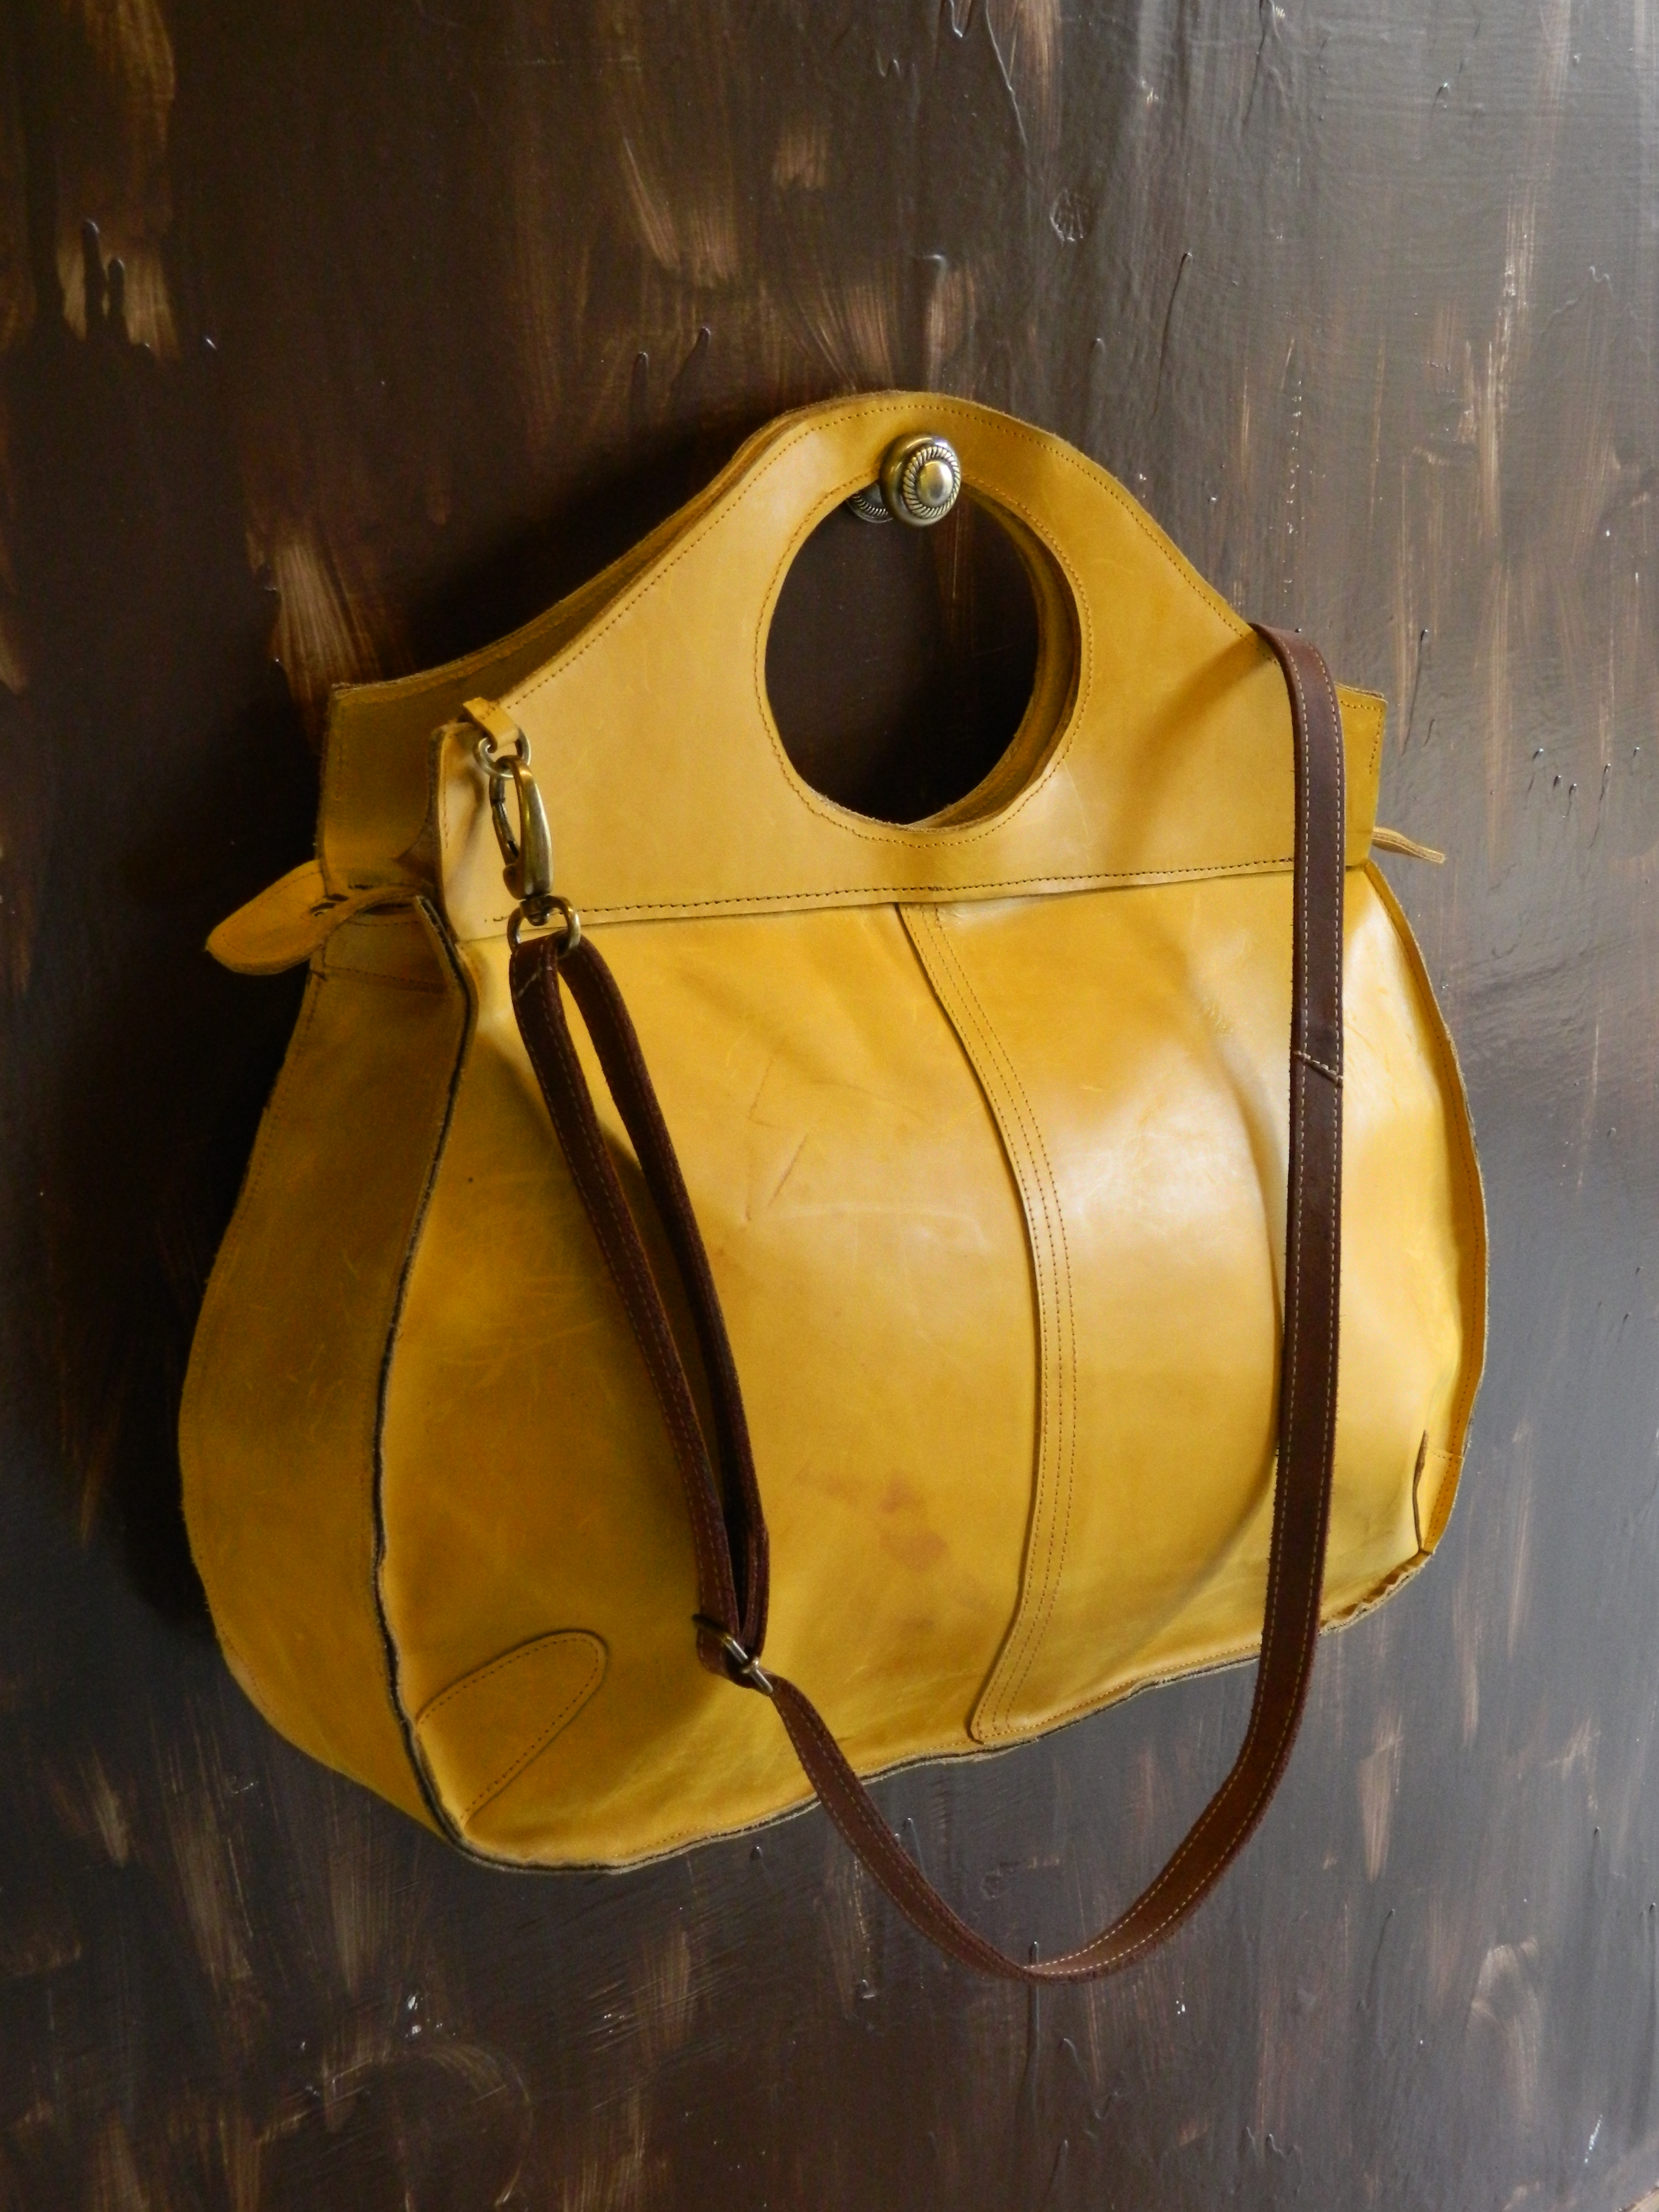 Mustard Yellow Leather Handbag Handbags 2018